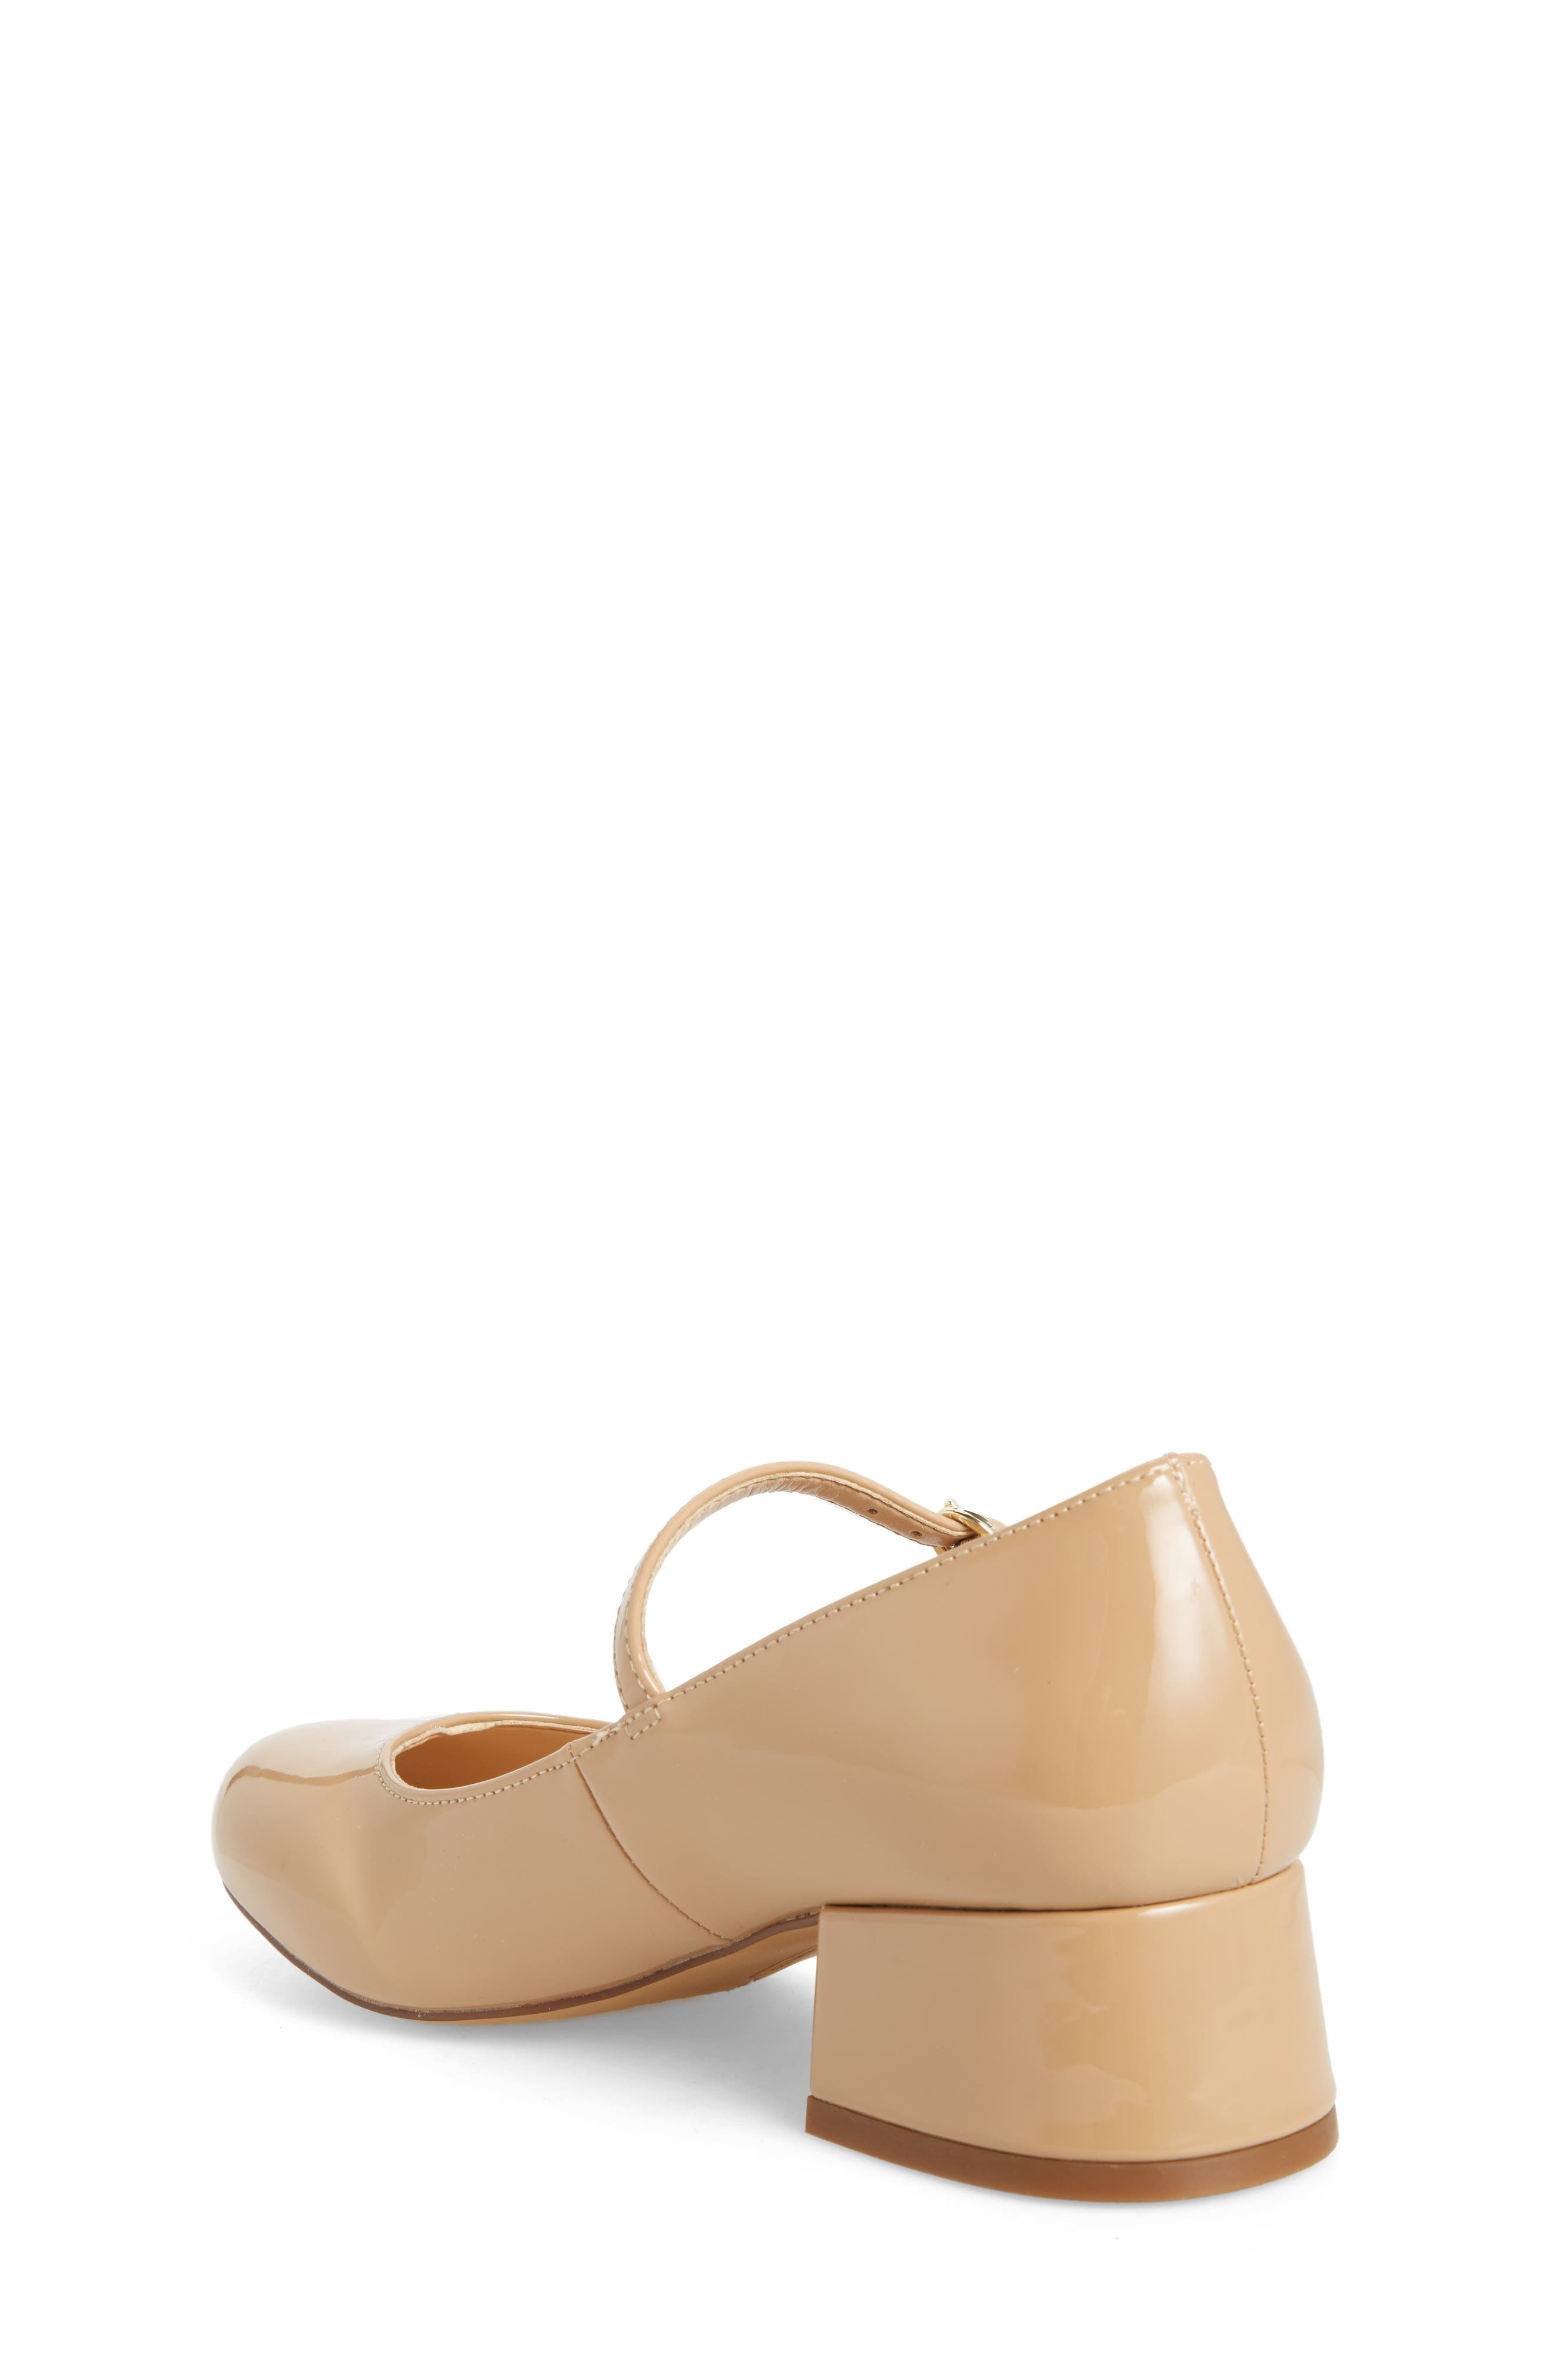 Brenna Mary Jane Pump,                             Alternate thumbnail 2, color,                             NUDE PATENT